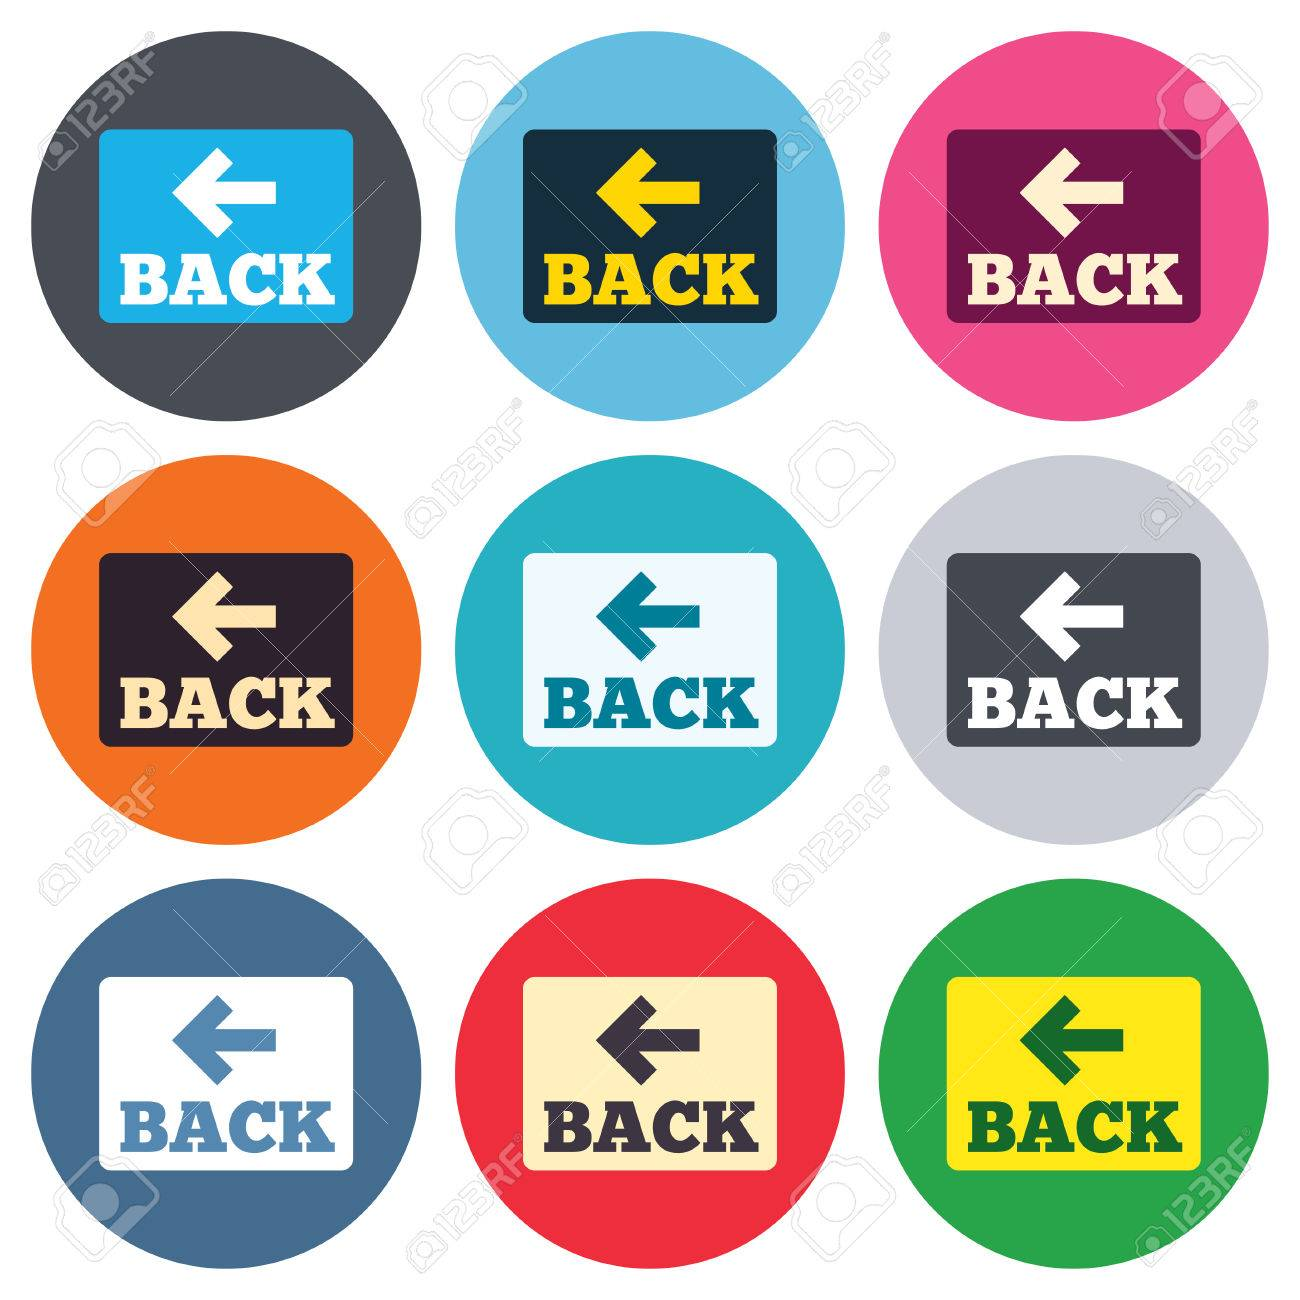 Back Icon Flat Flat Design Circle Icons Set